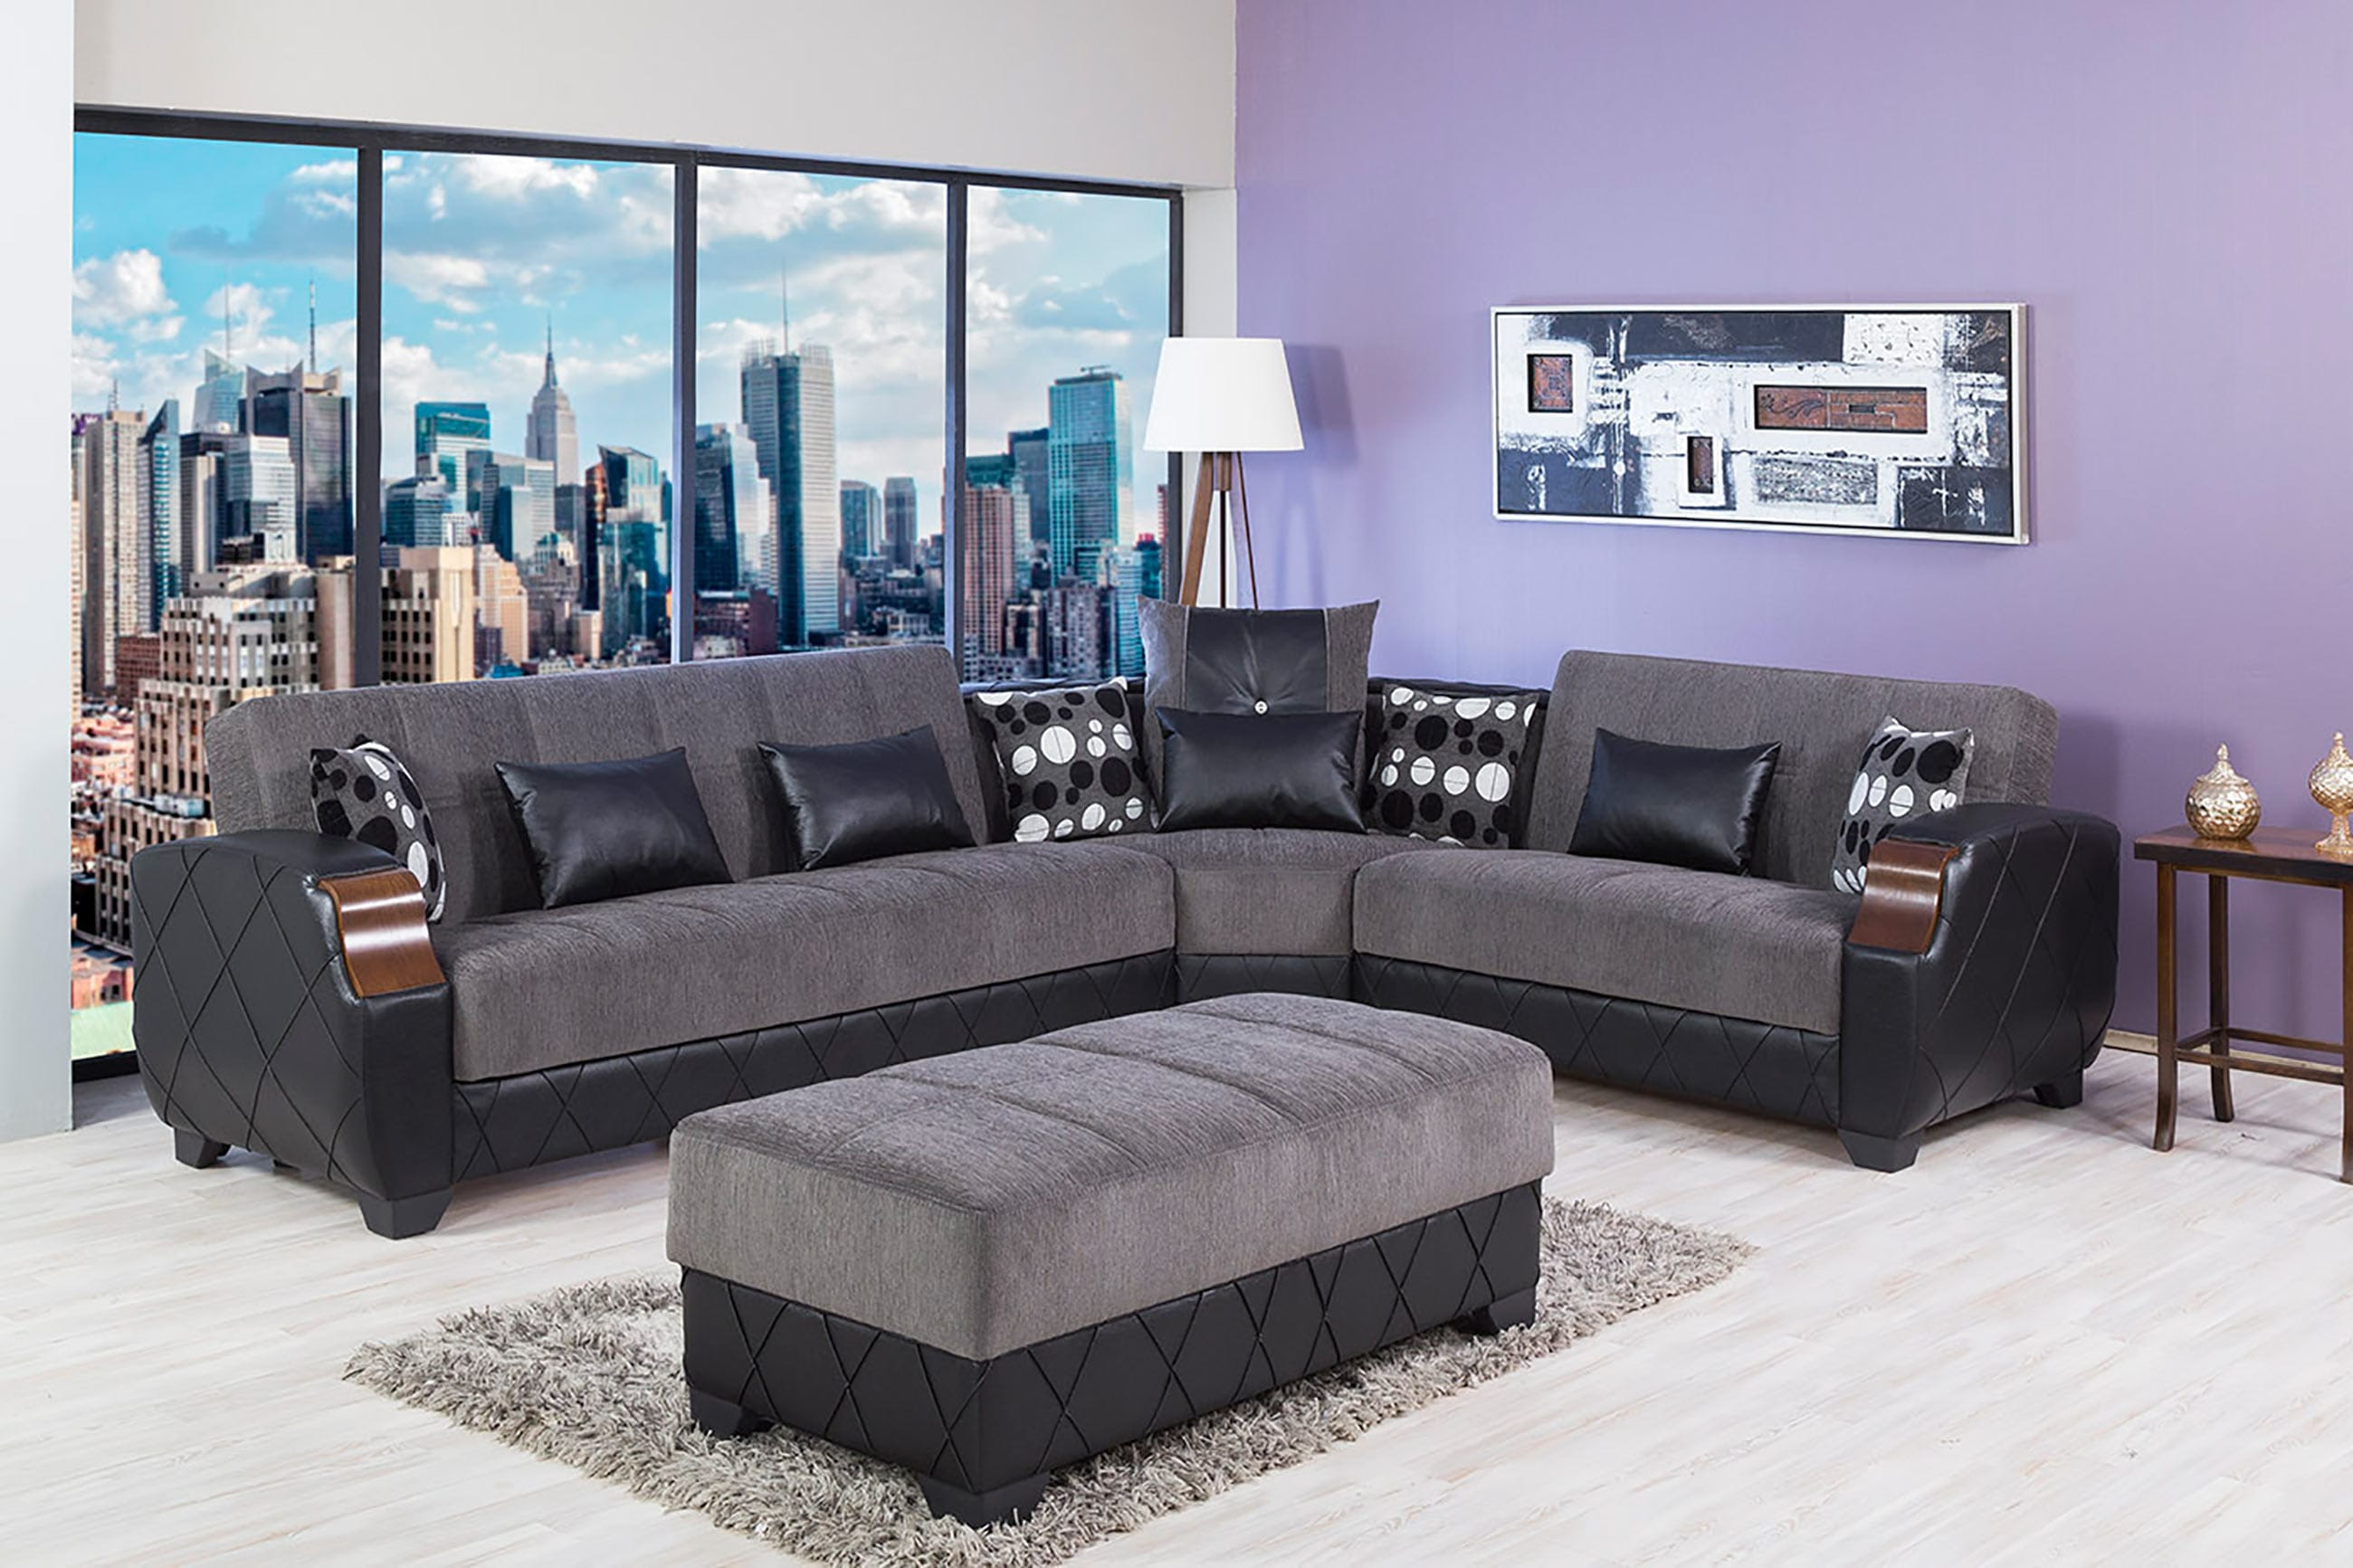 simple couches luxury of ideas best sofa leather inspirational couch sofas sectional minimalist design grey